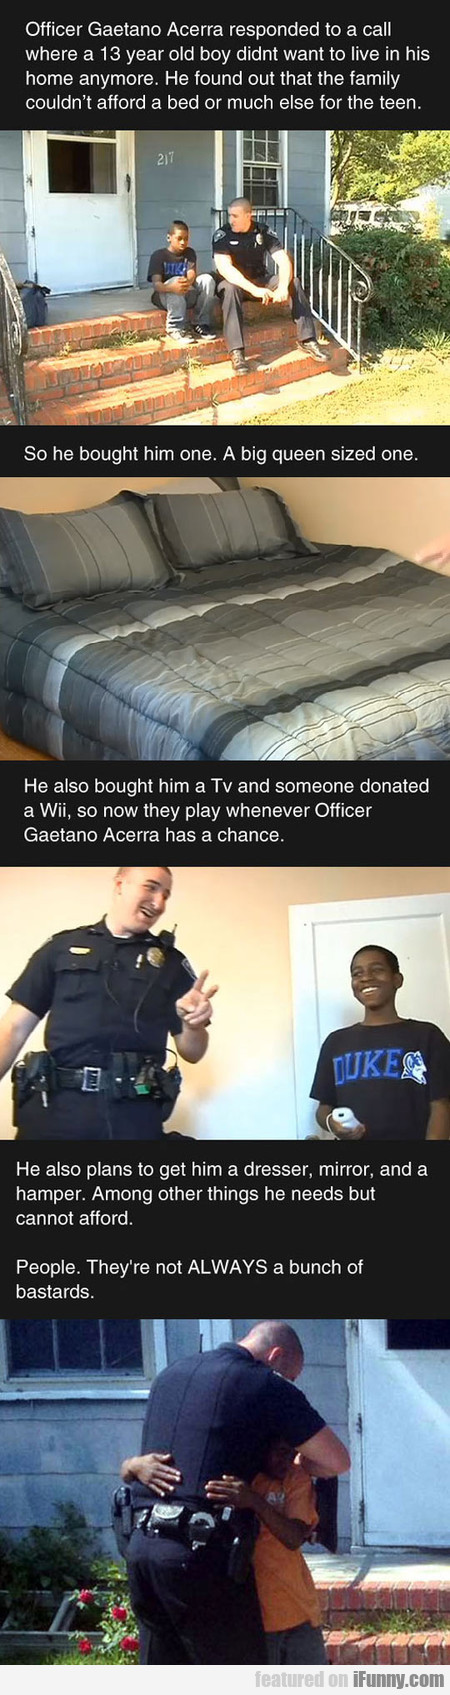 Officer Gaetano Acerra Responded To A Call